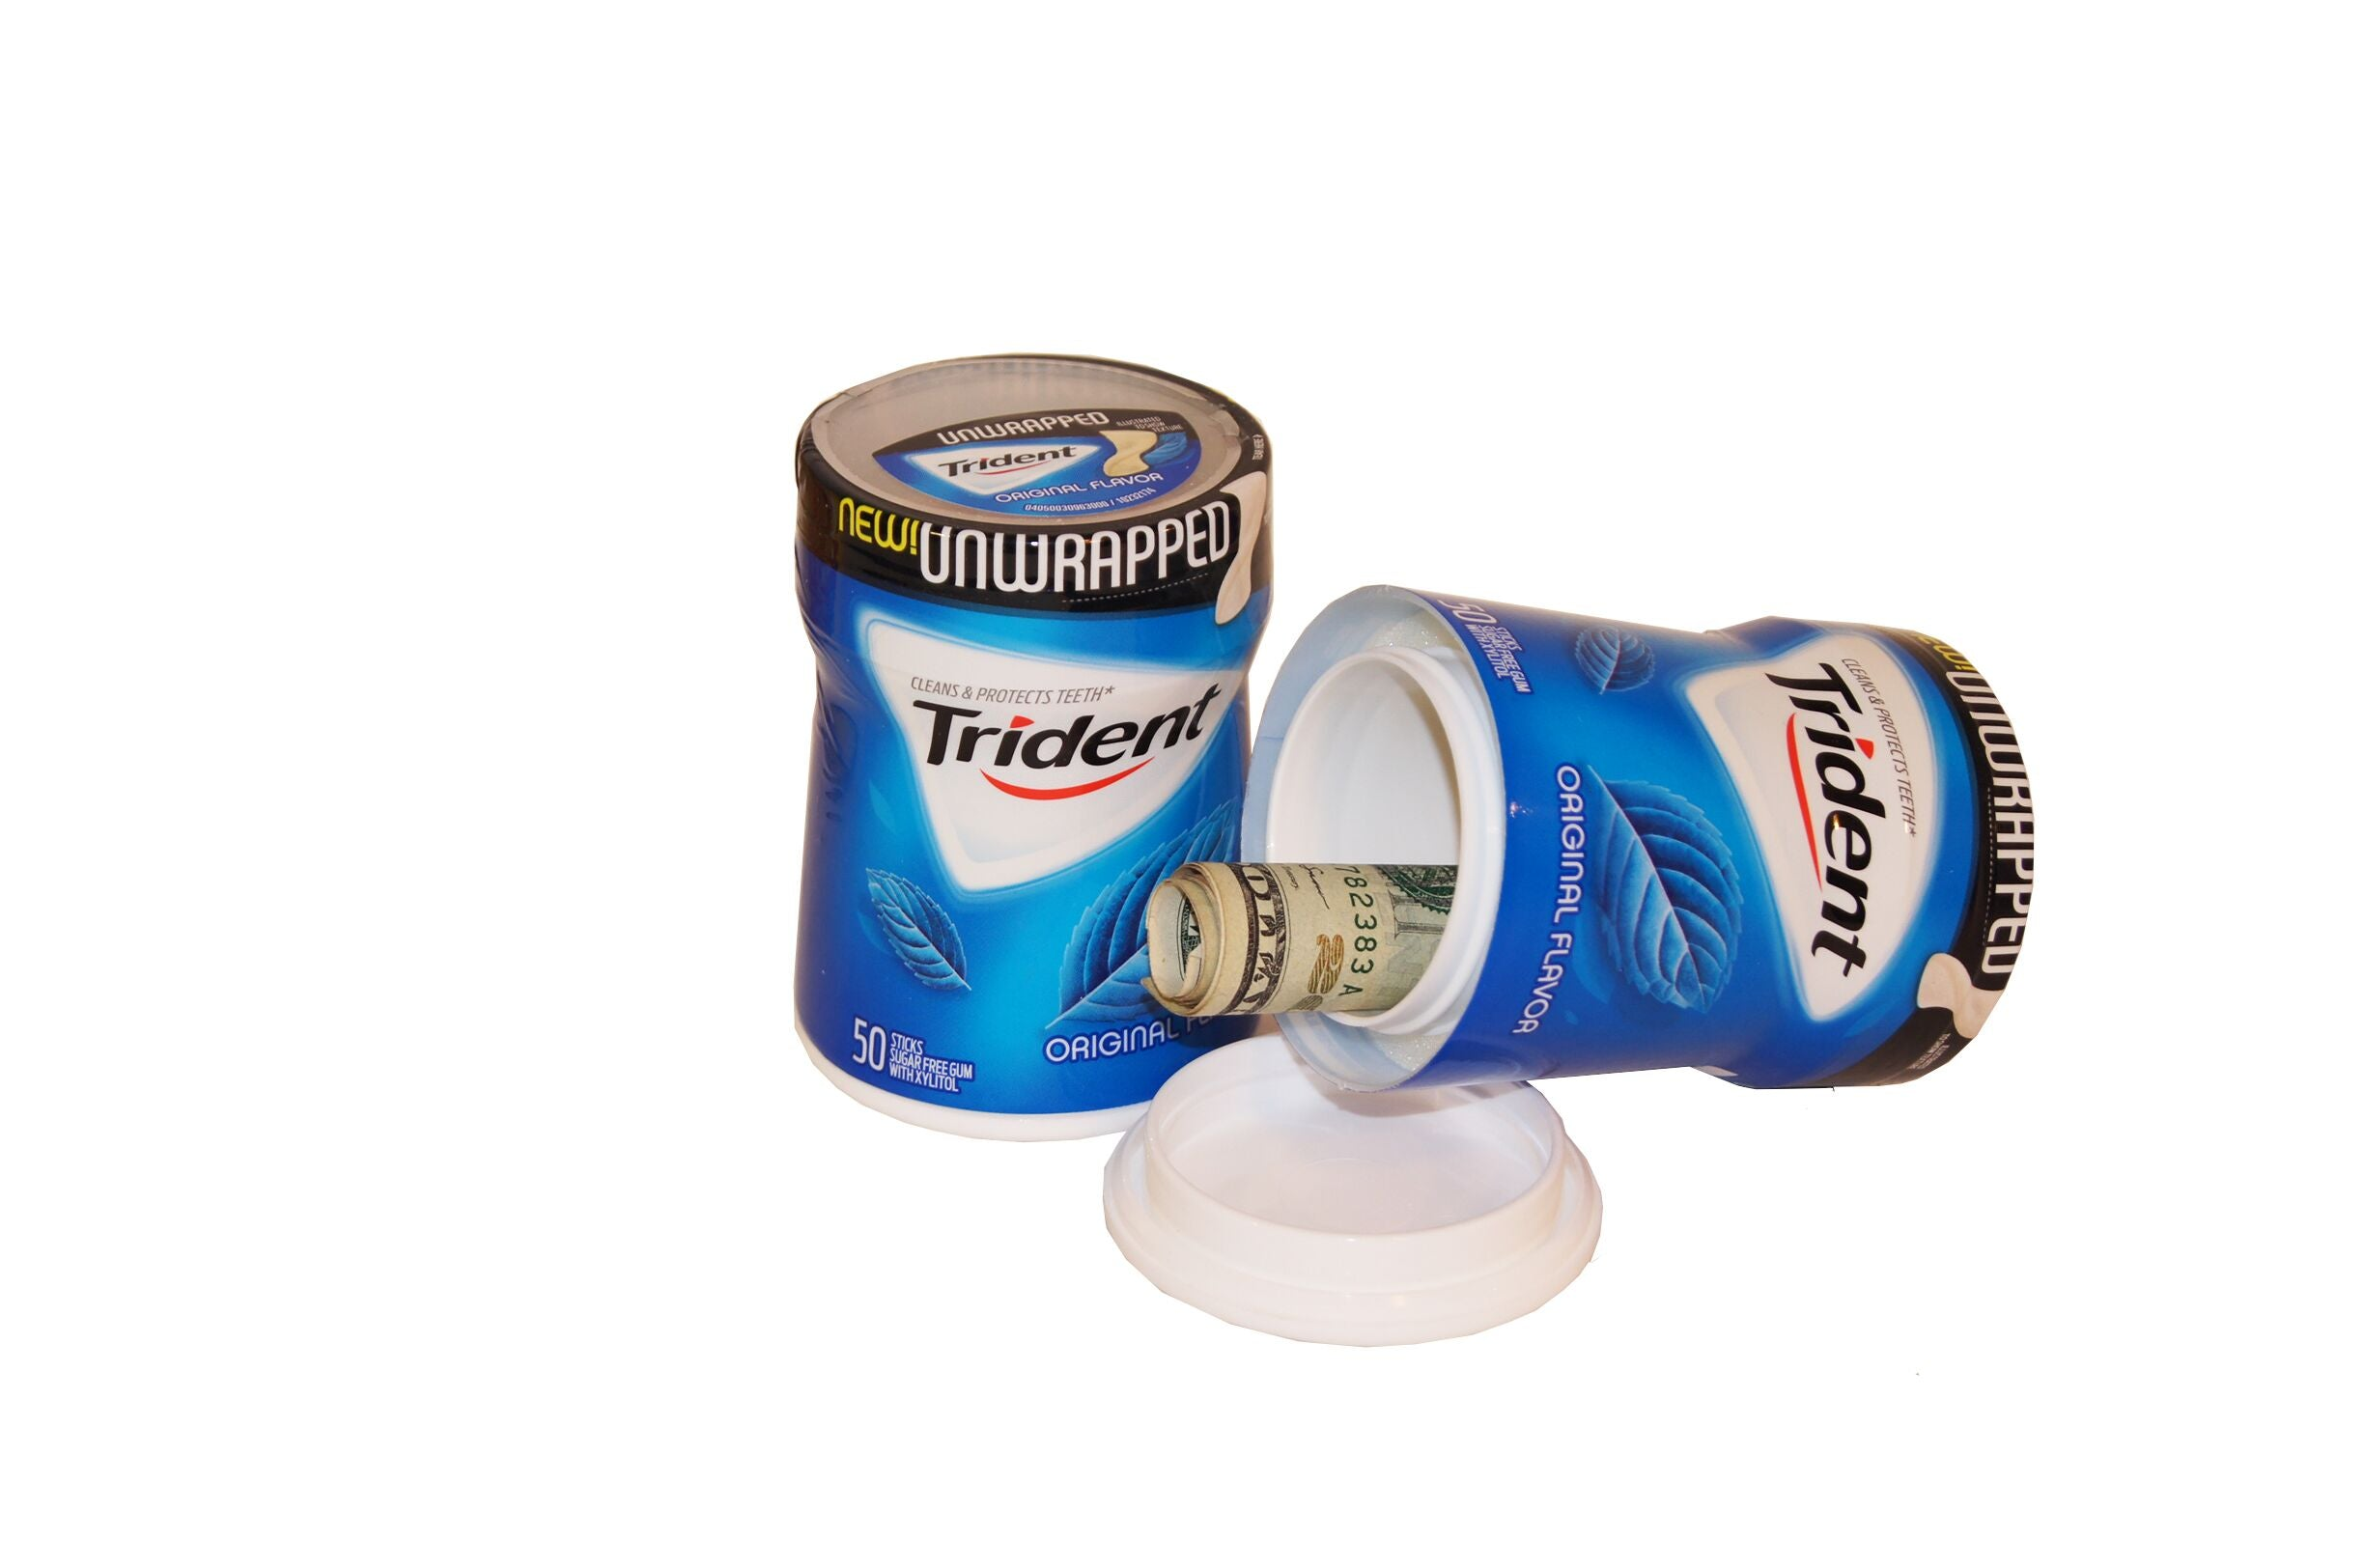 Trident Gum Diversion Safe